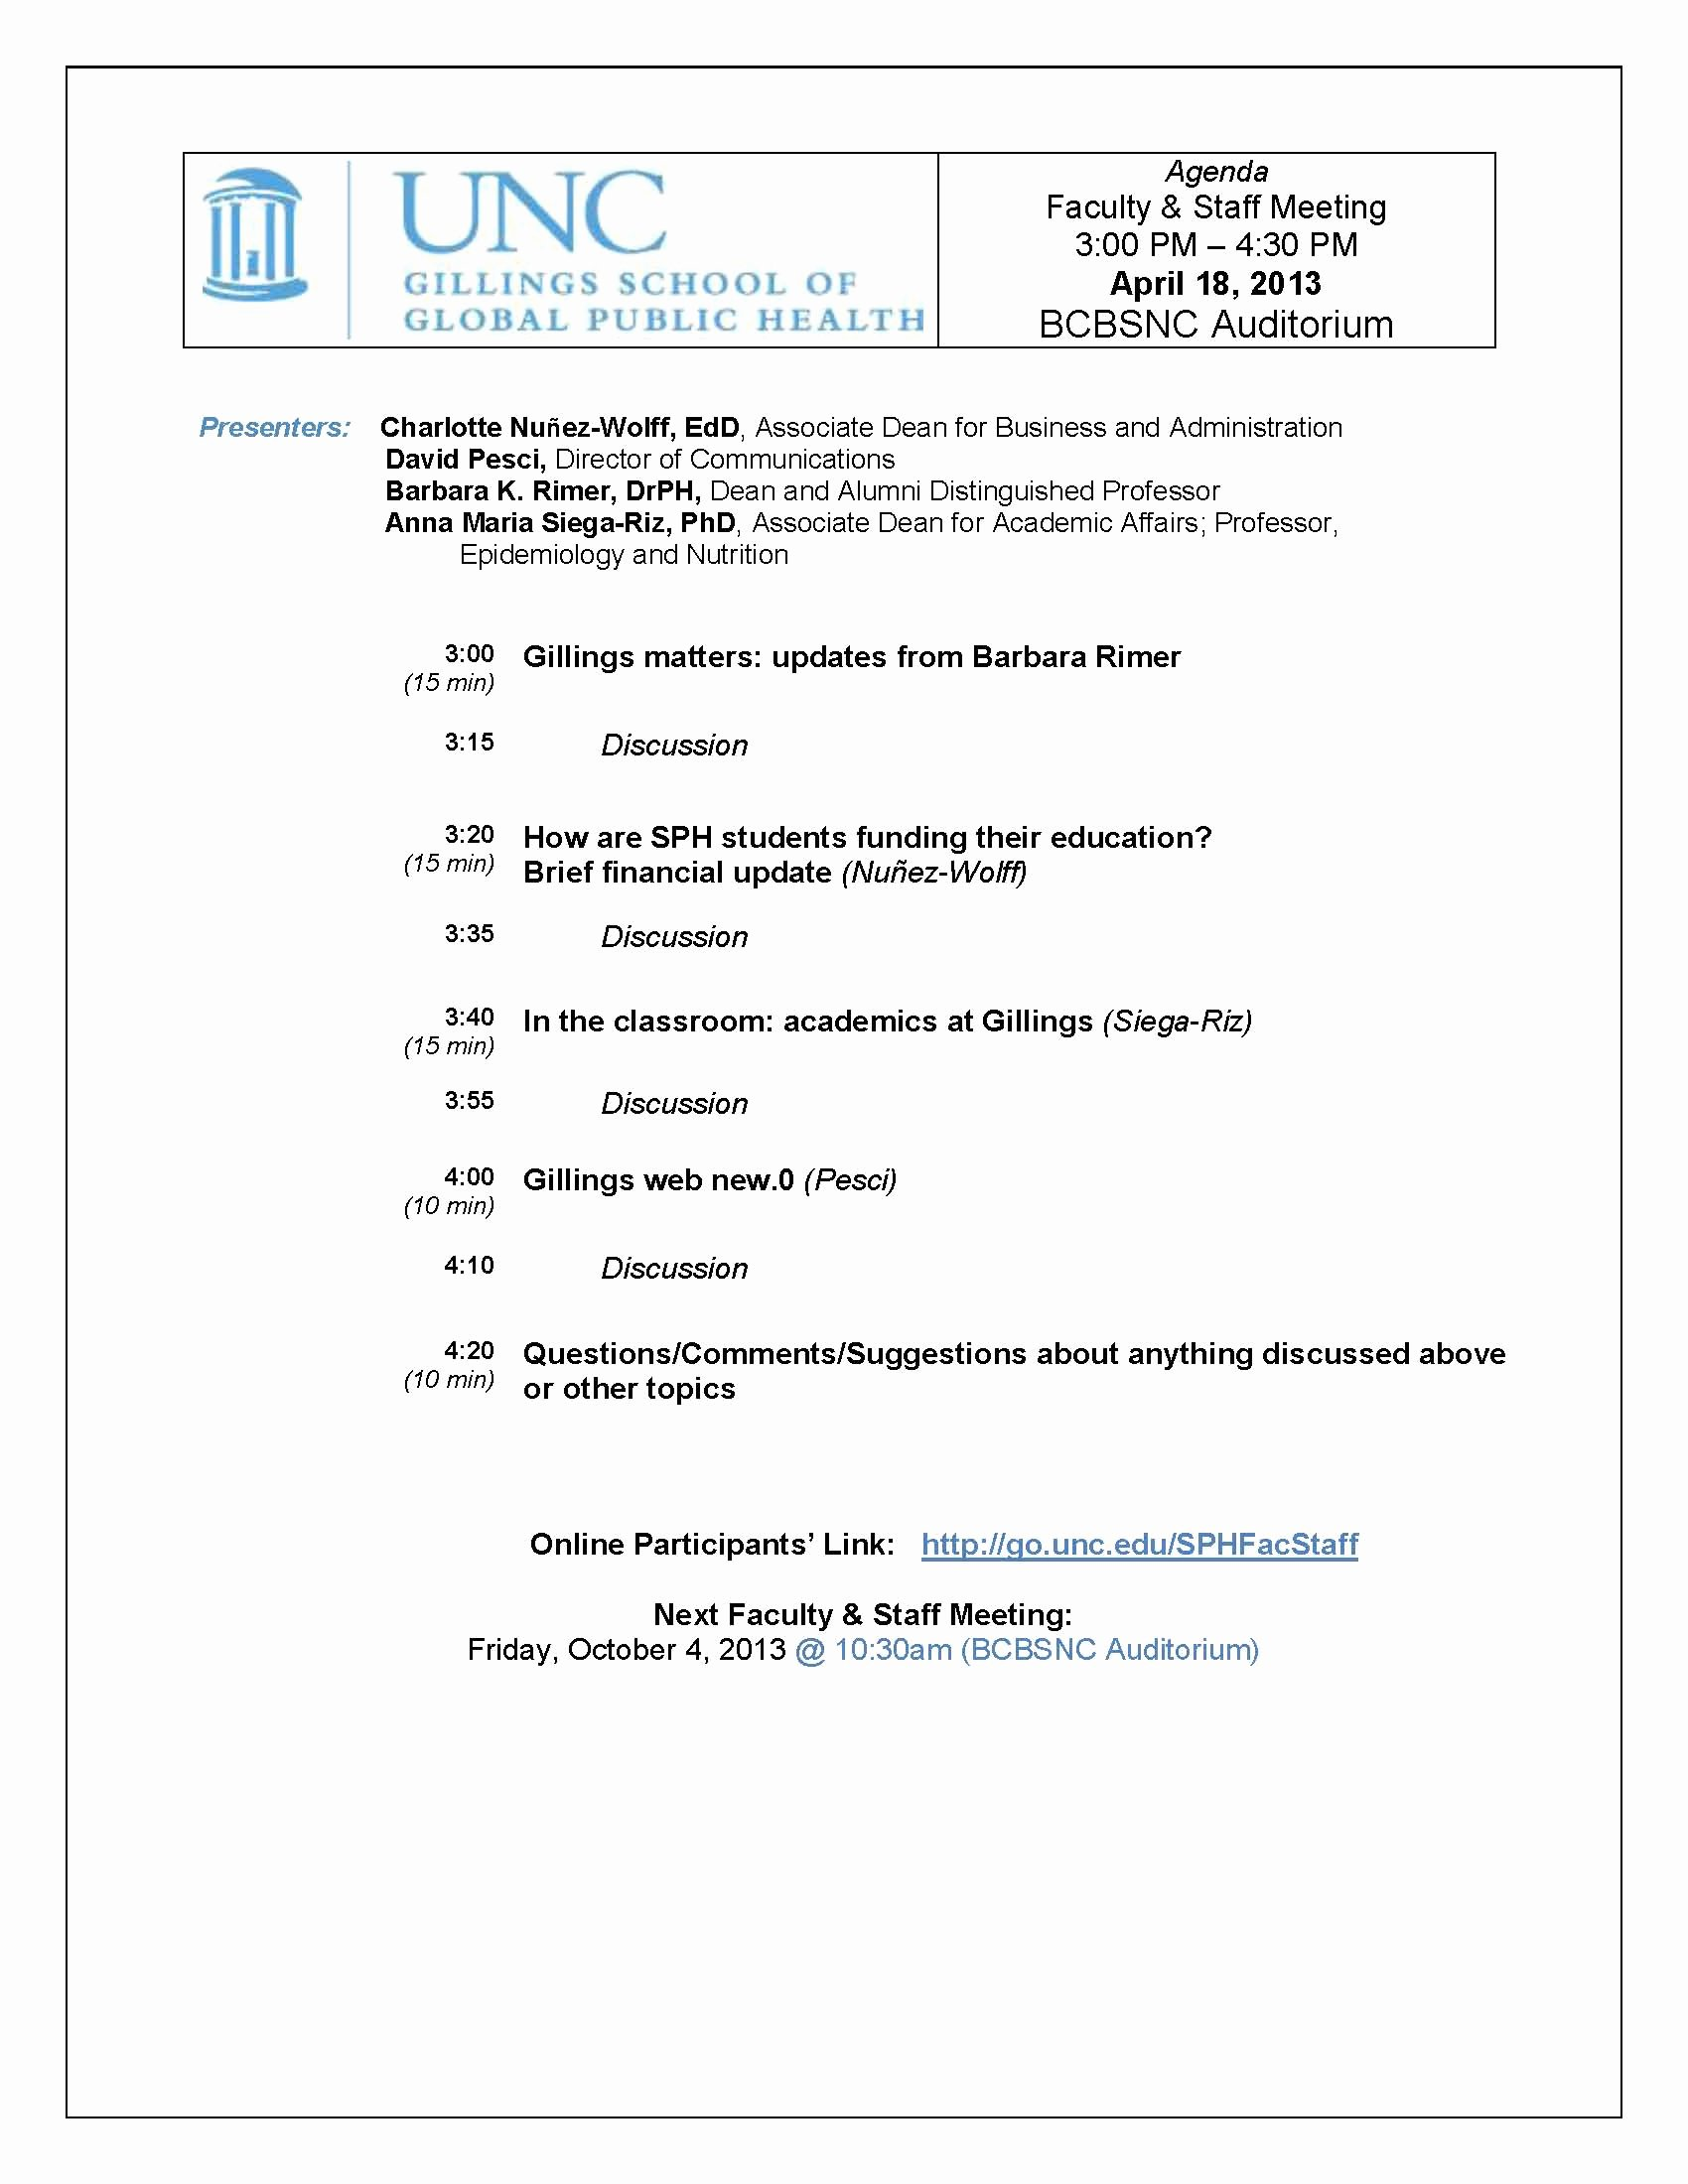 Staff Meetings Agenda Template Awesome Faculty Staff Meetings Archives • Unc Gillings School Of